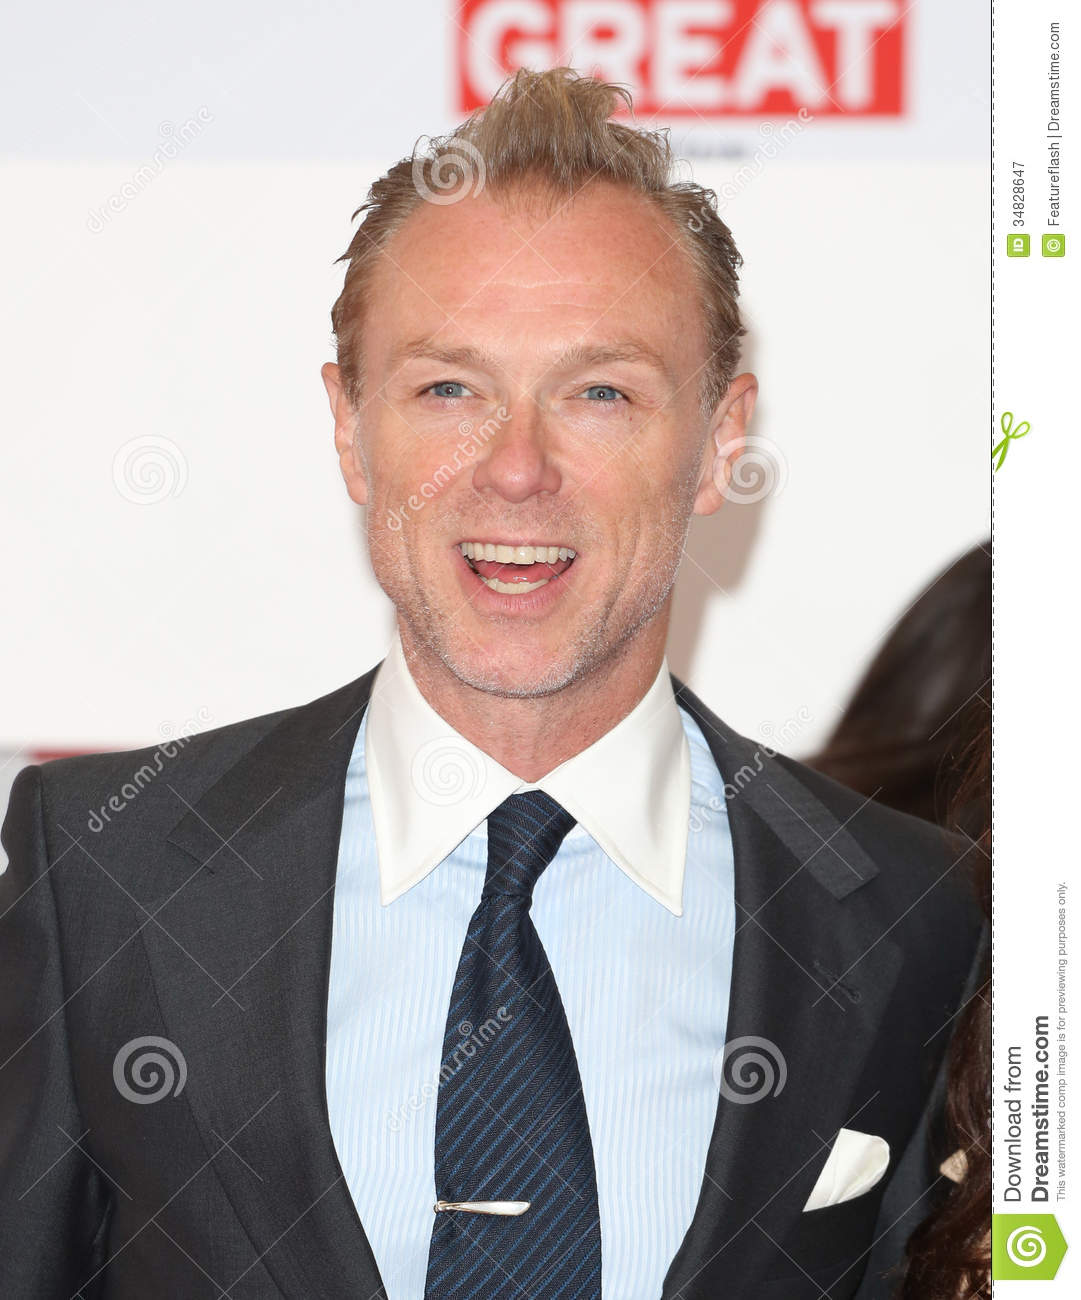 Gary Kemp Gary kemp editorial - gary-kemp-wife-lauren-barber-uk-s-creative-industries-reception-supported-foundation-forum-royal-34828647